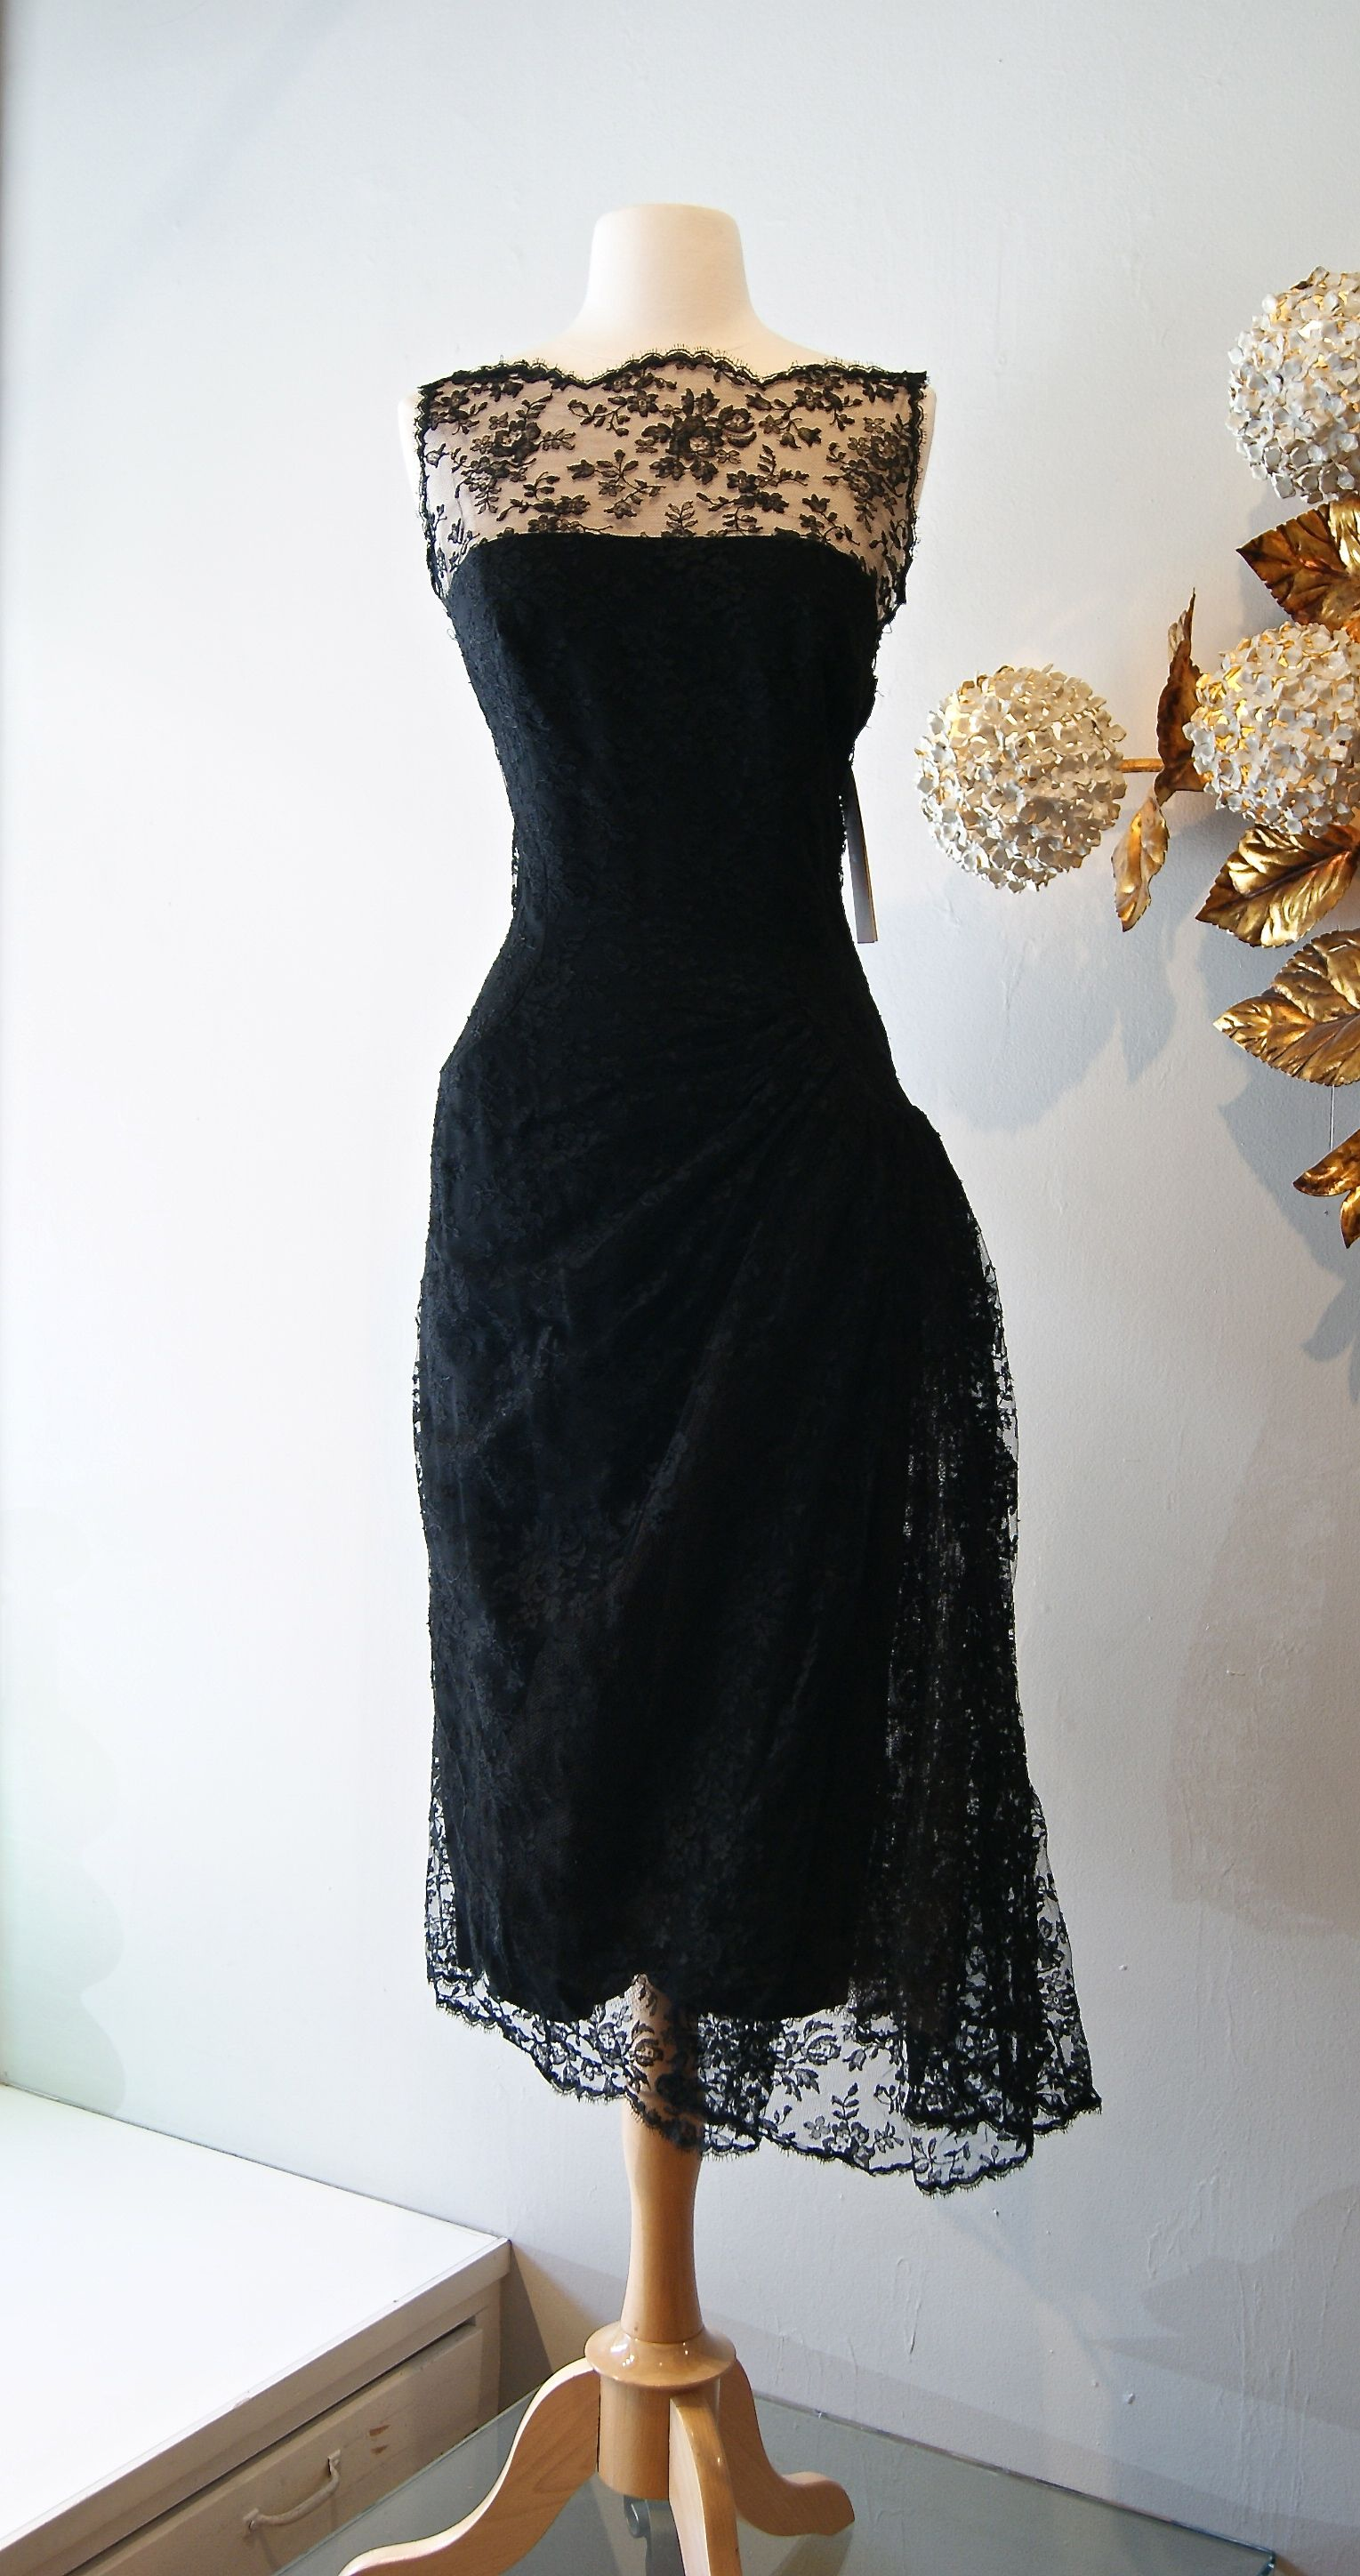 1950 lace dresses for women